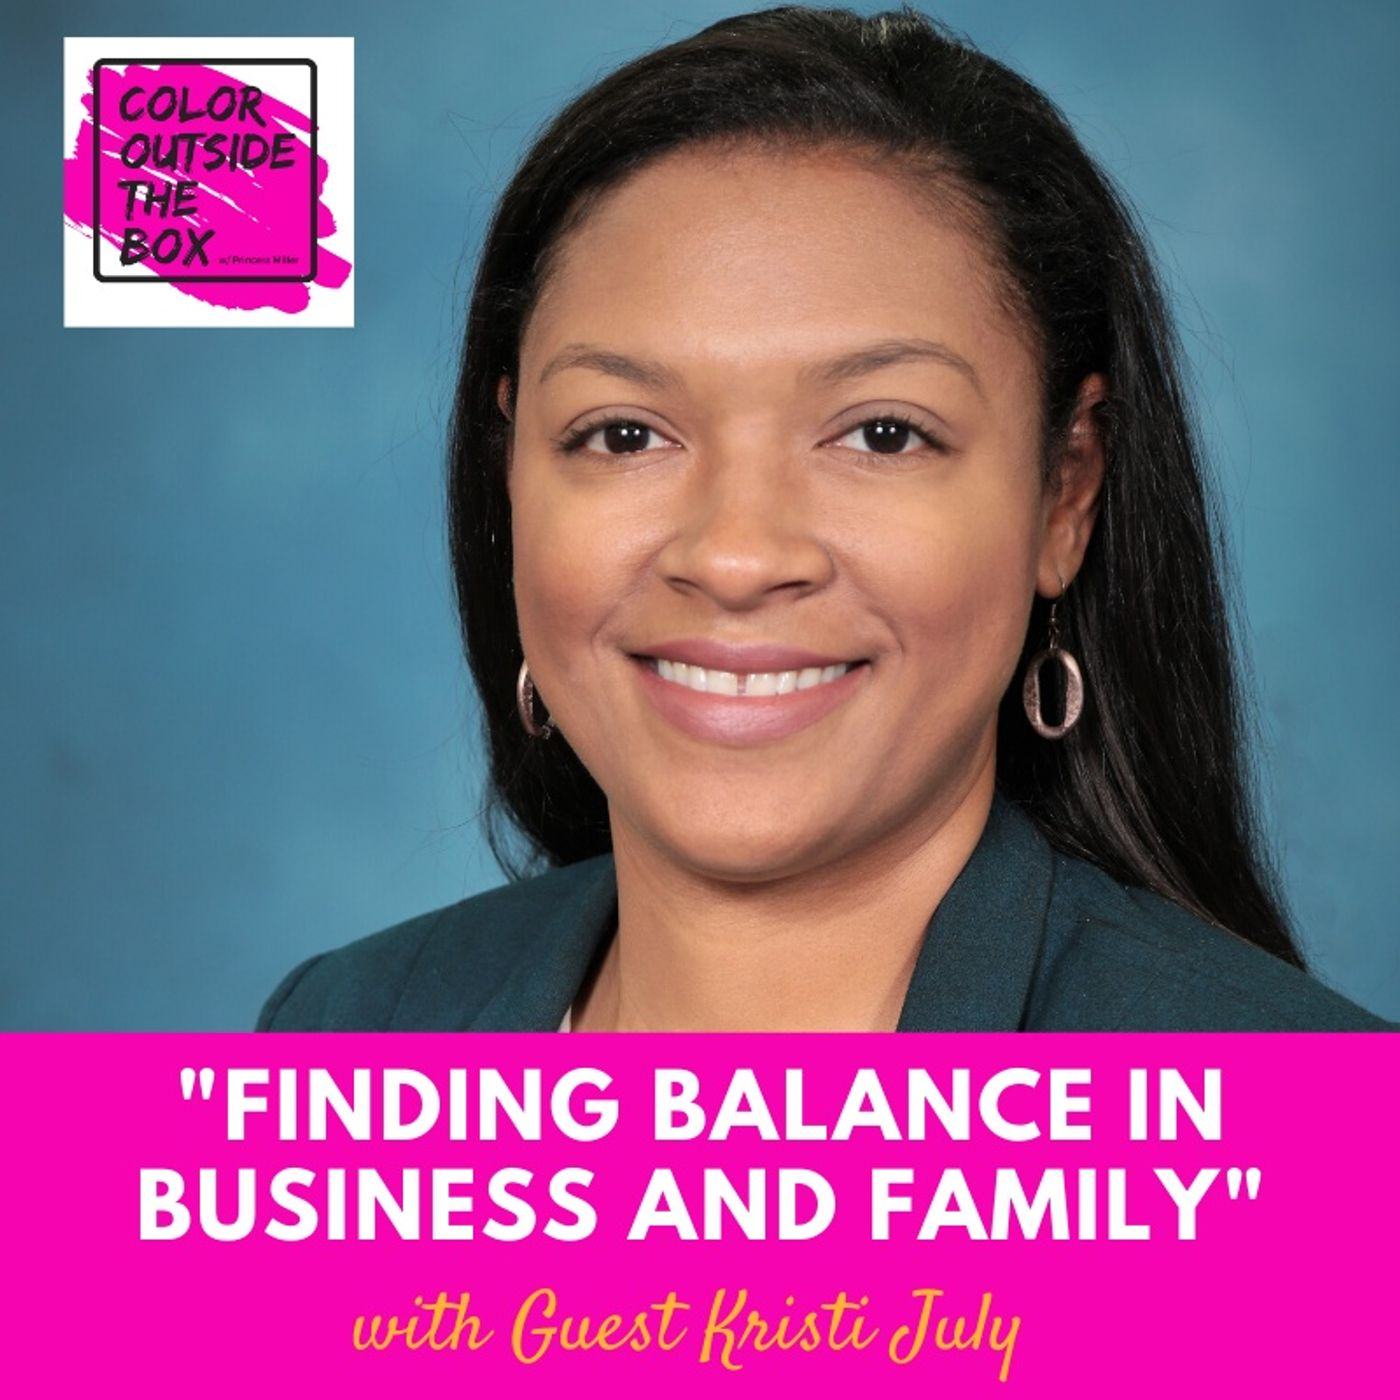 Finding Balance in Business and Family with Kristi July